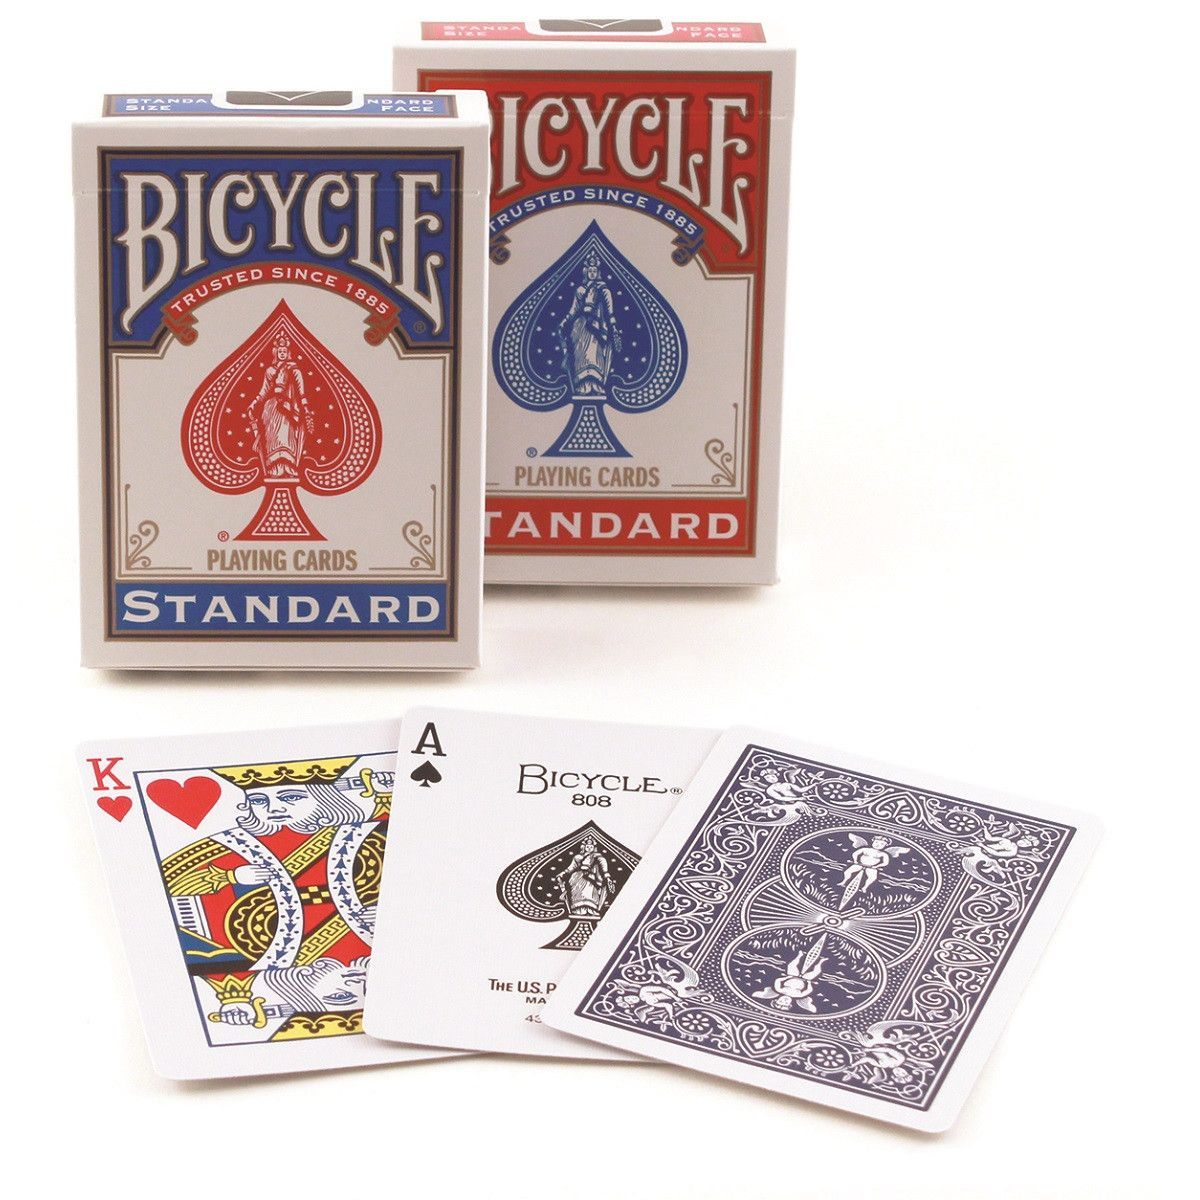 Bicycle Standard Index Playing Cards 2Pack (With images